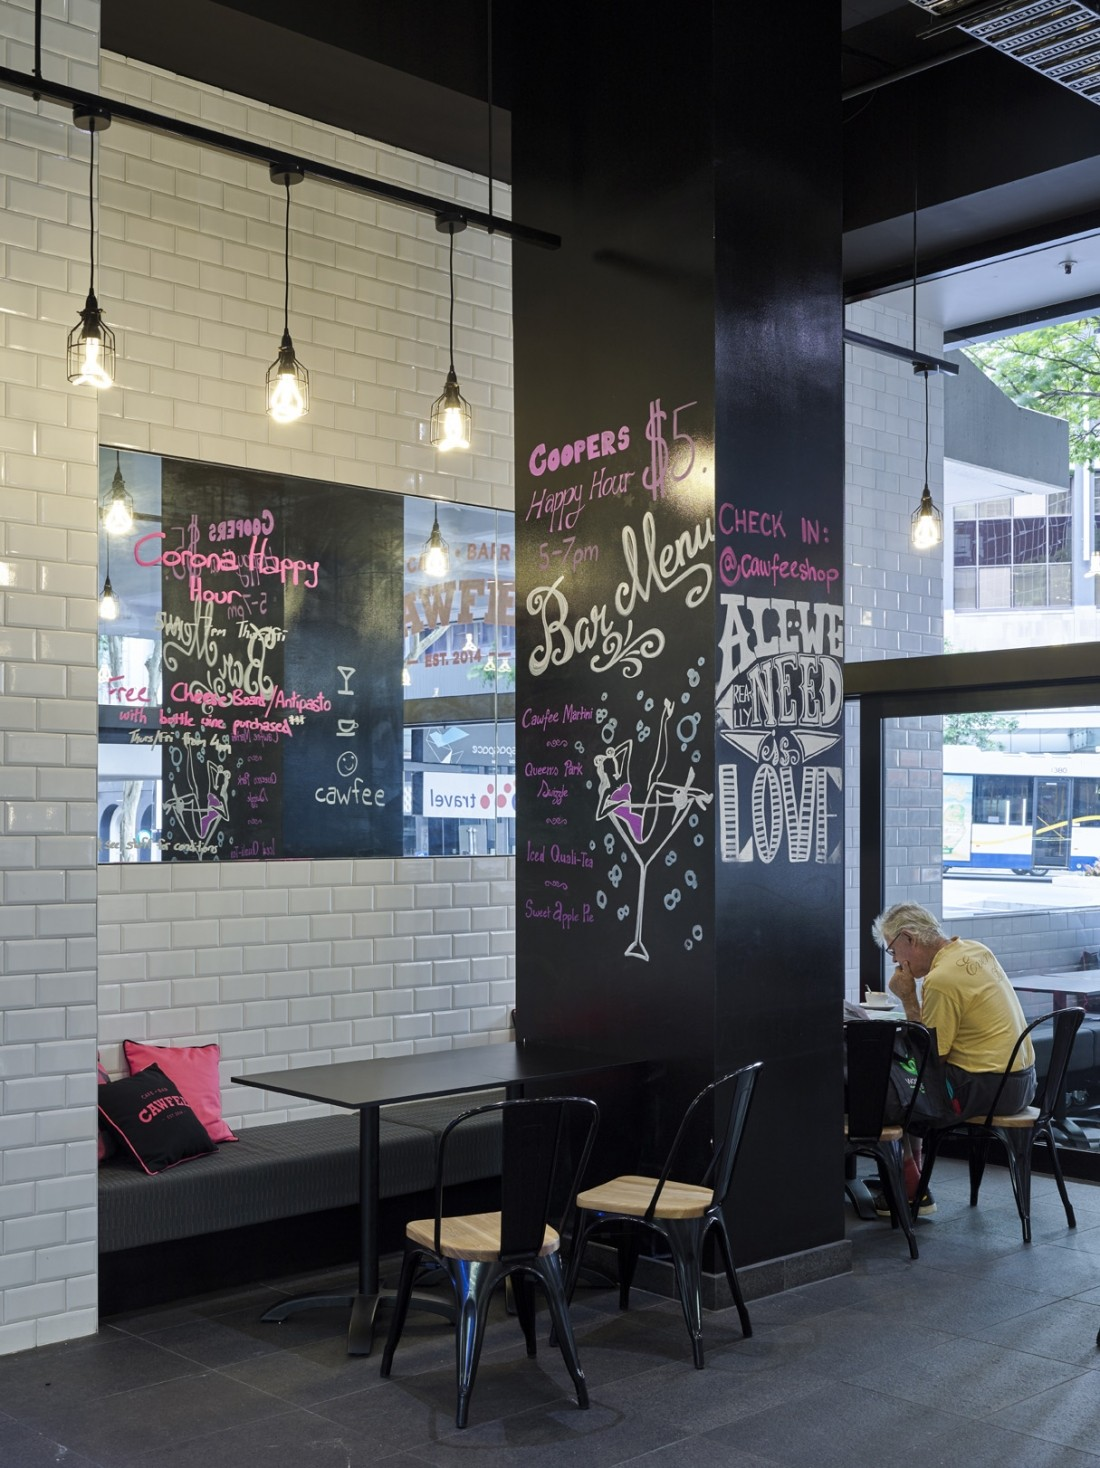 Cawfee - Reddog Architects Award Winning Architects Brisbane